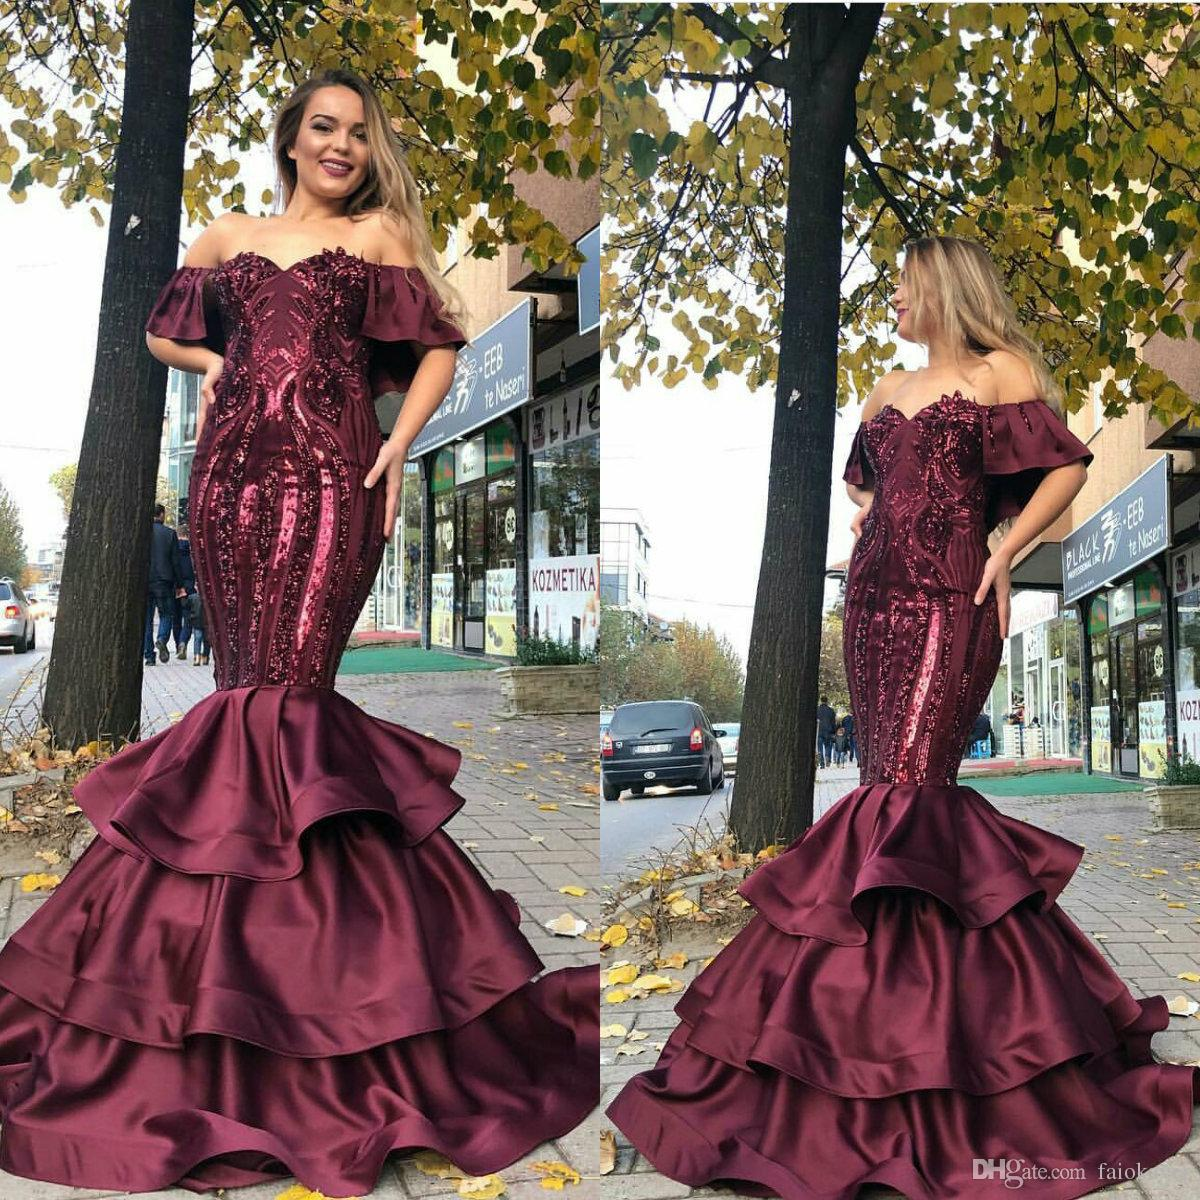 8caf47f5d018 2018 Burgundy Mermaid Prom Dresses Off The Shoulder Satin Lace Sequins Evening  Dress Party Wear Tiered Skirts Plus Size Formal Gowns Lace Prom Dresses  2015 ...